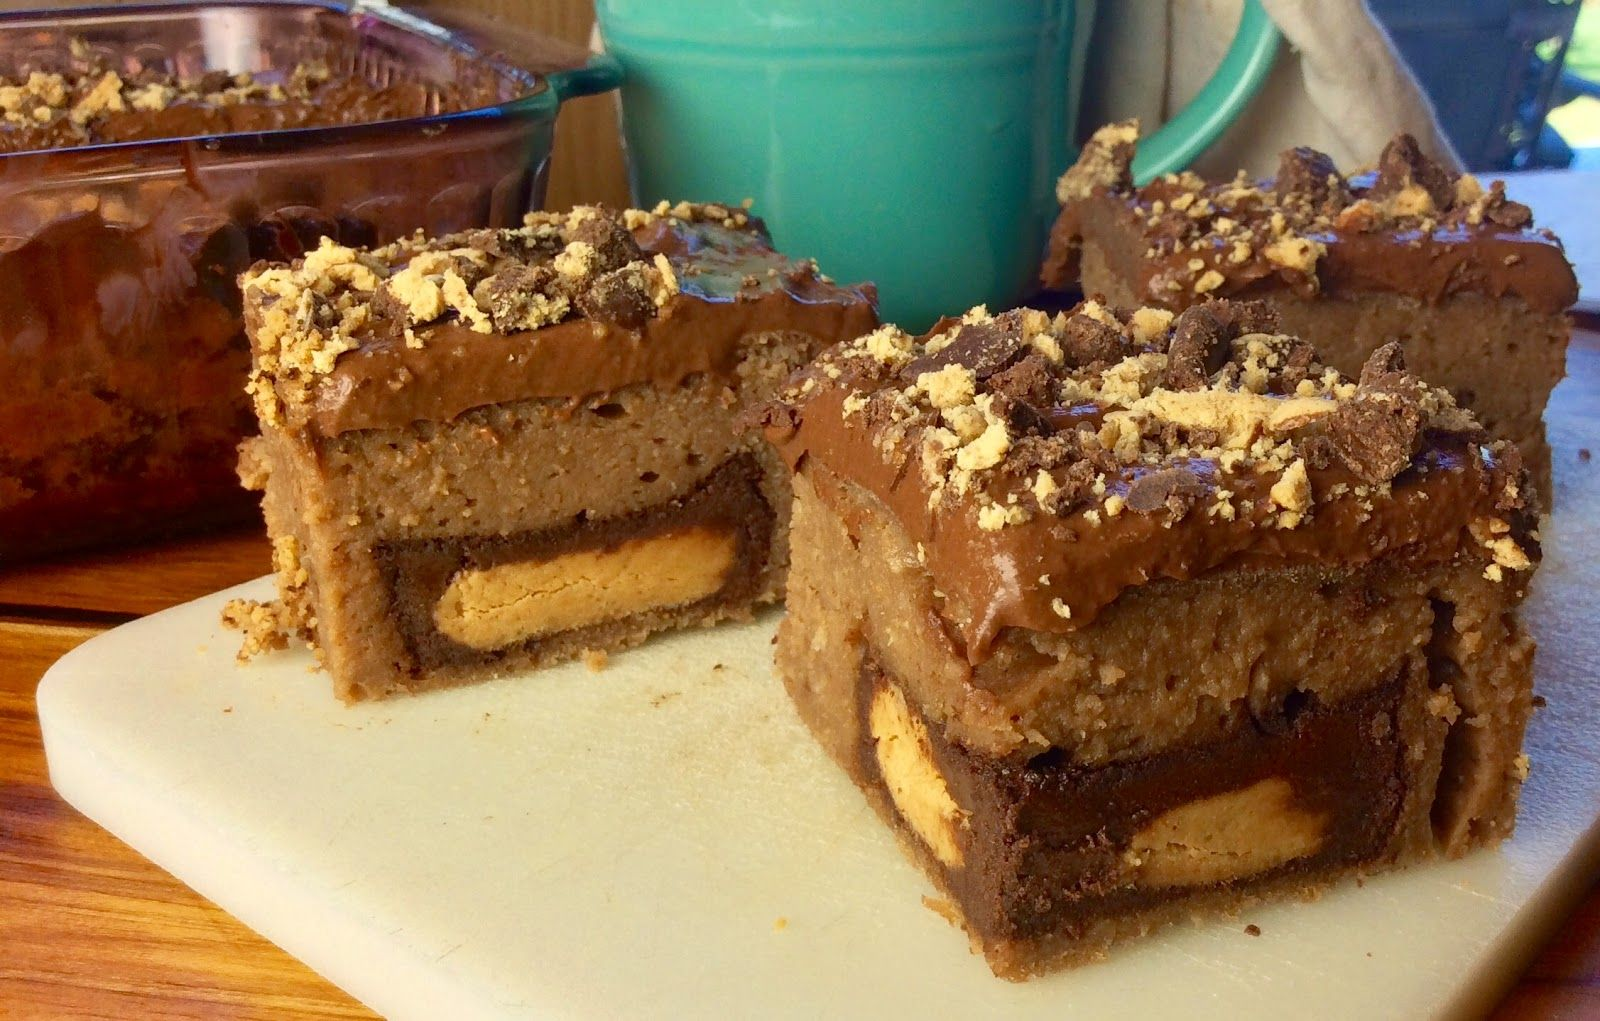 Food Fitness by Paige: Peanut Butter Cup stuffed Brownies